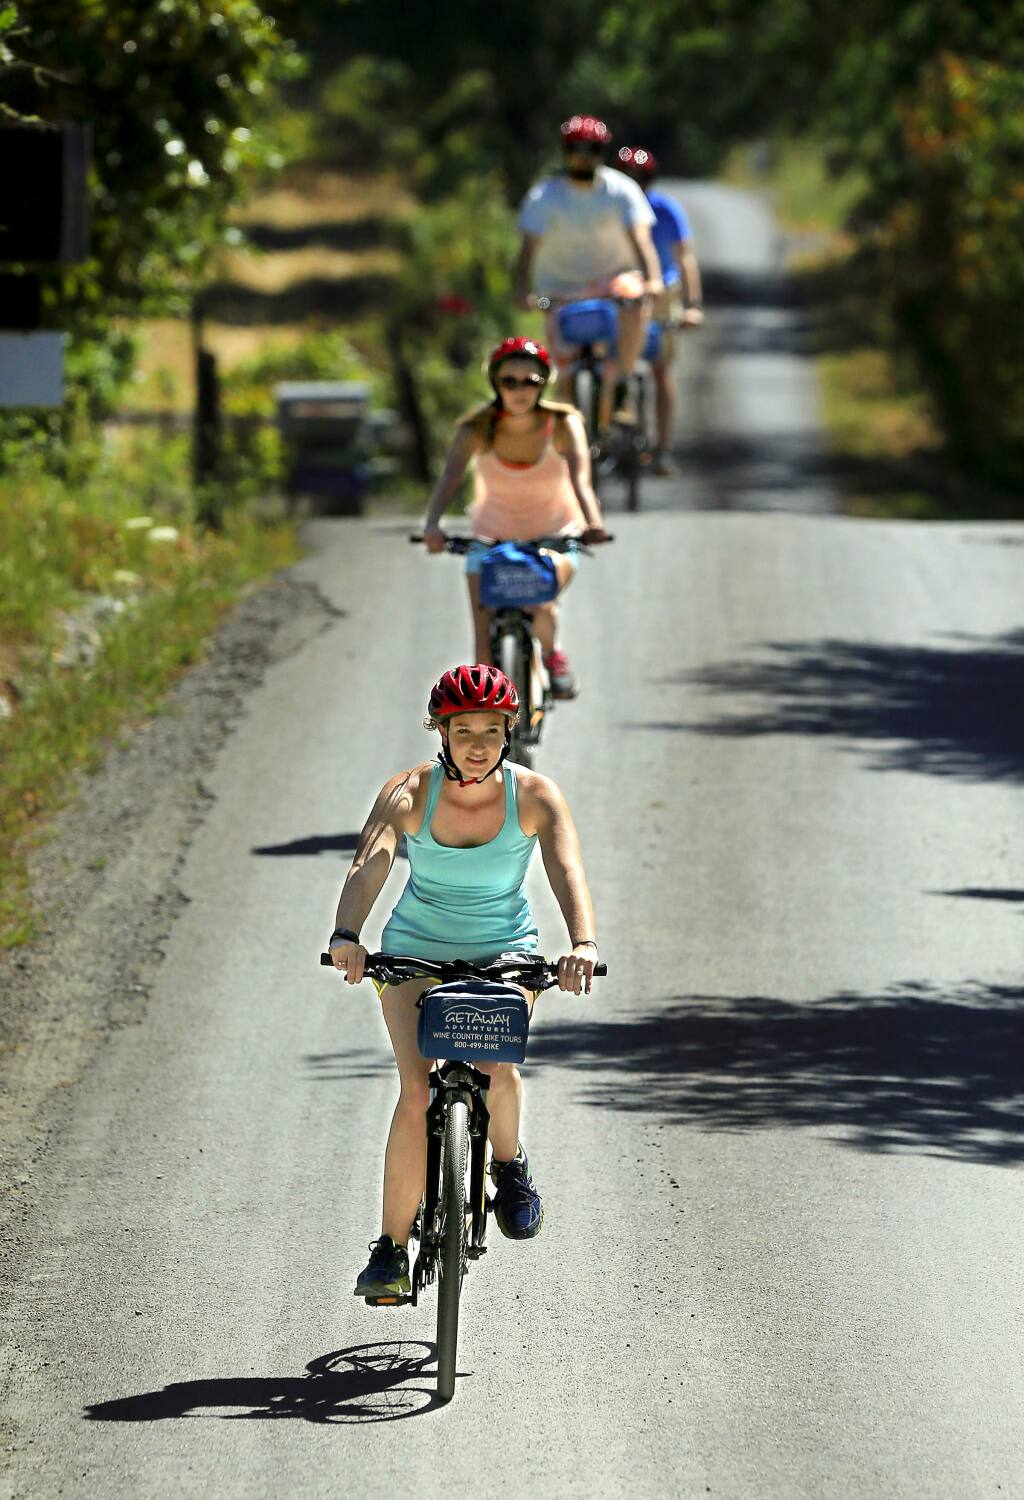 Sara Babineau leads a group of friends from Wisconsin on a bike ride to Iron Horse Vineyards on their pedal n' paddle trip with Gateway Adventures. (JOHN BURGESS/The Press Democrat)